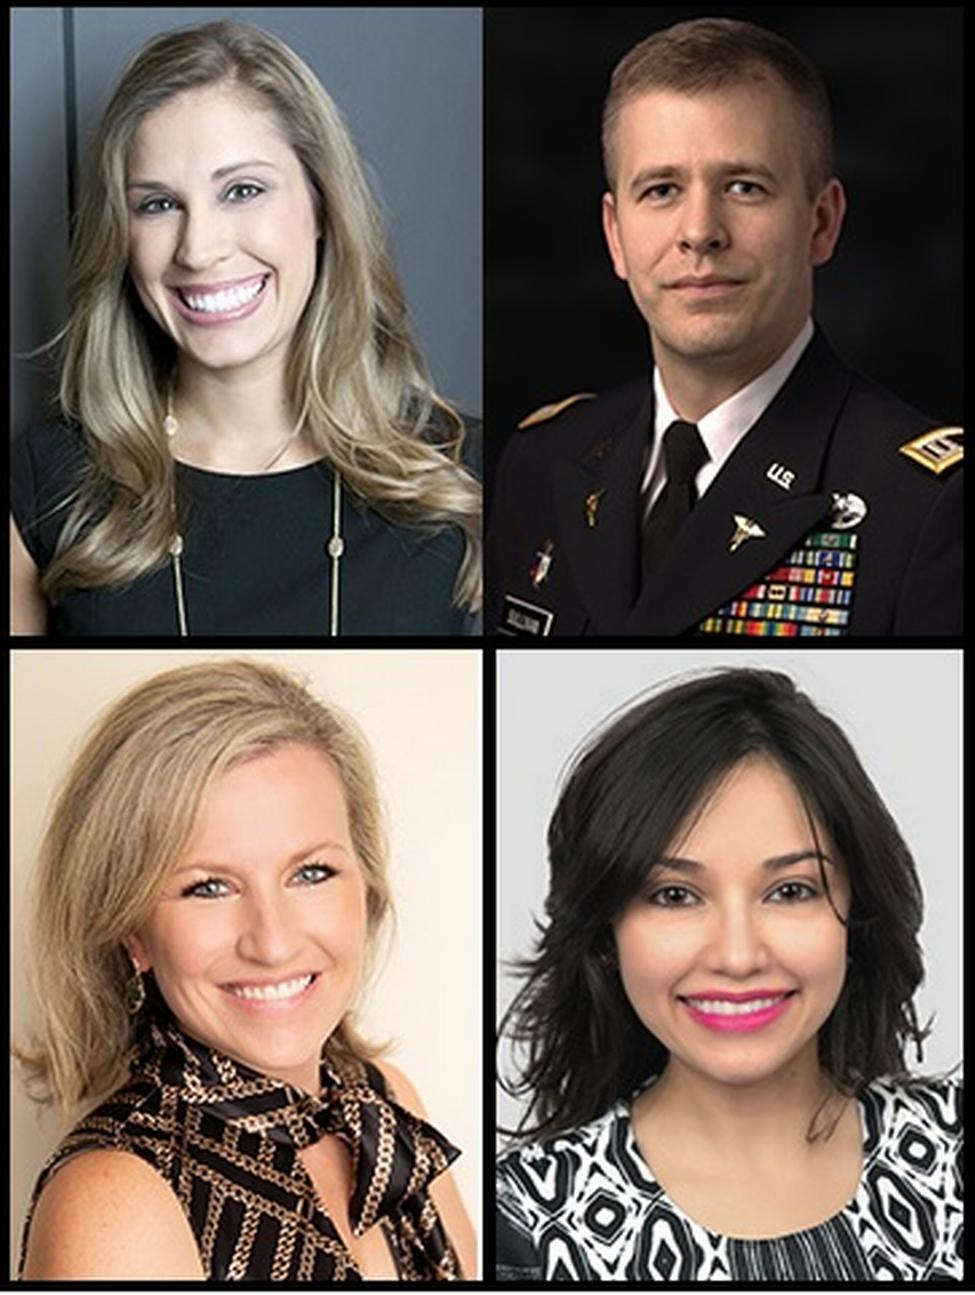 Nominees for Texas New Dentist of the Year™ include UTSD alumni (clockwise from top left) Drs. Katie Stuchlik of Houston, Michael Sullivan of Keene, Melissa Uriegas of Harlingen, and Courtni Tello of Texas City.